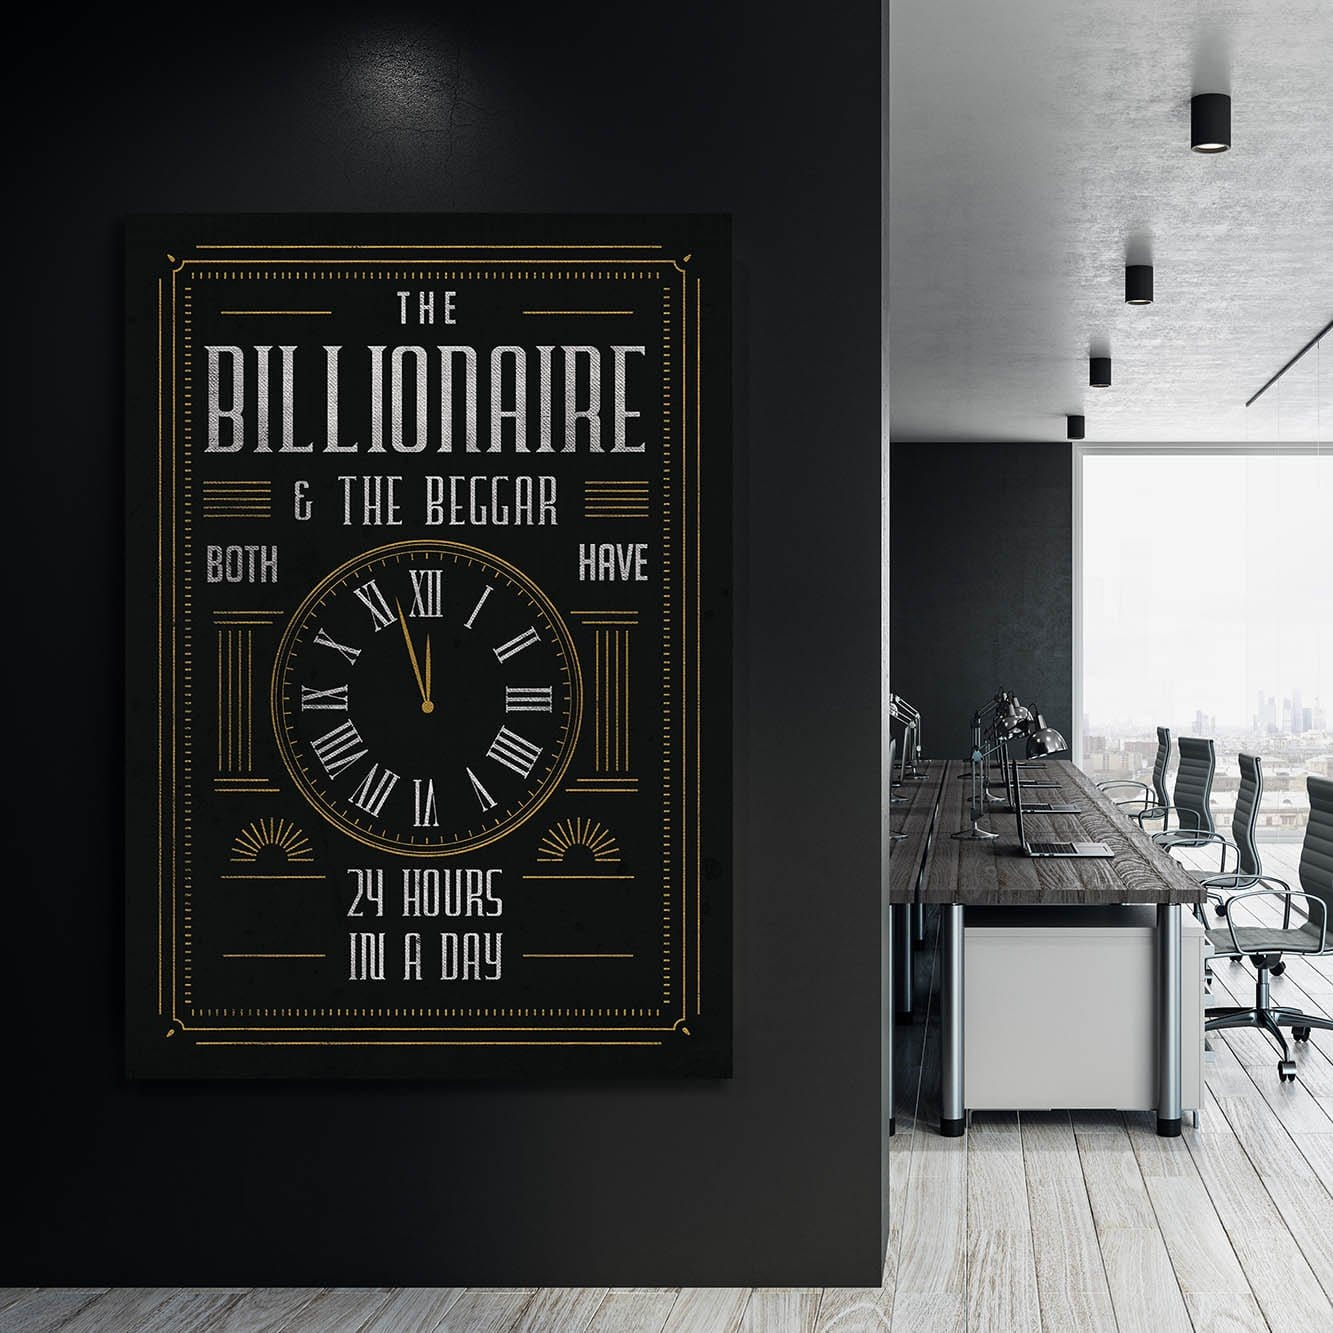 Billionaire & Beggar - Framed Canvas Painting Wall Art Office Decor, large modern pop artwork for home or office, Entrepreneur Inspirational and motivational Quotes on Canvas great for man cave or home. Perfect for Artwork Addicts. Made in USA, FREE Shipping.